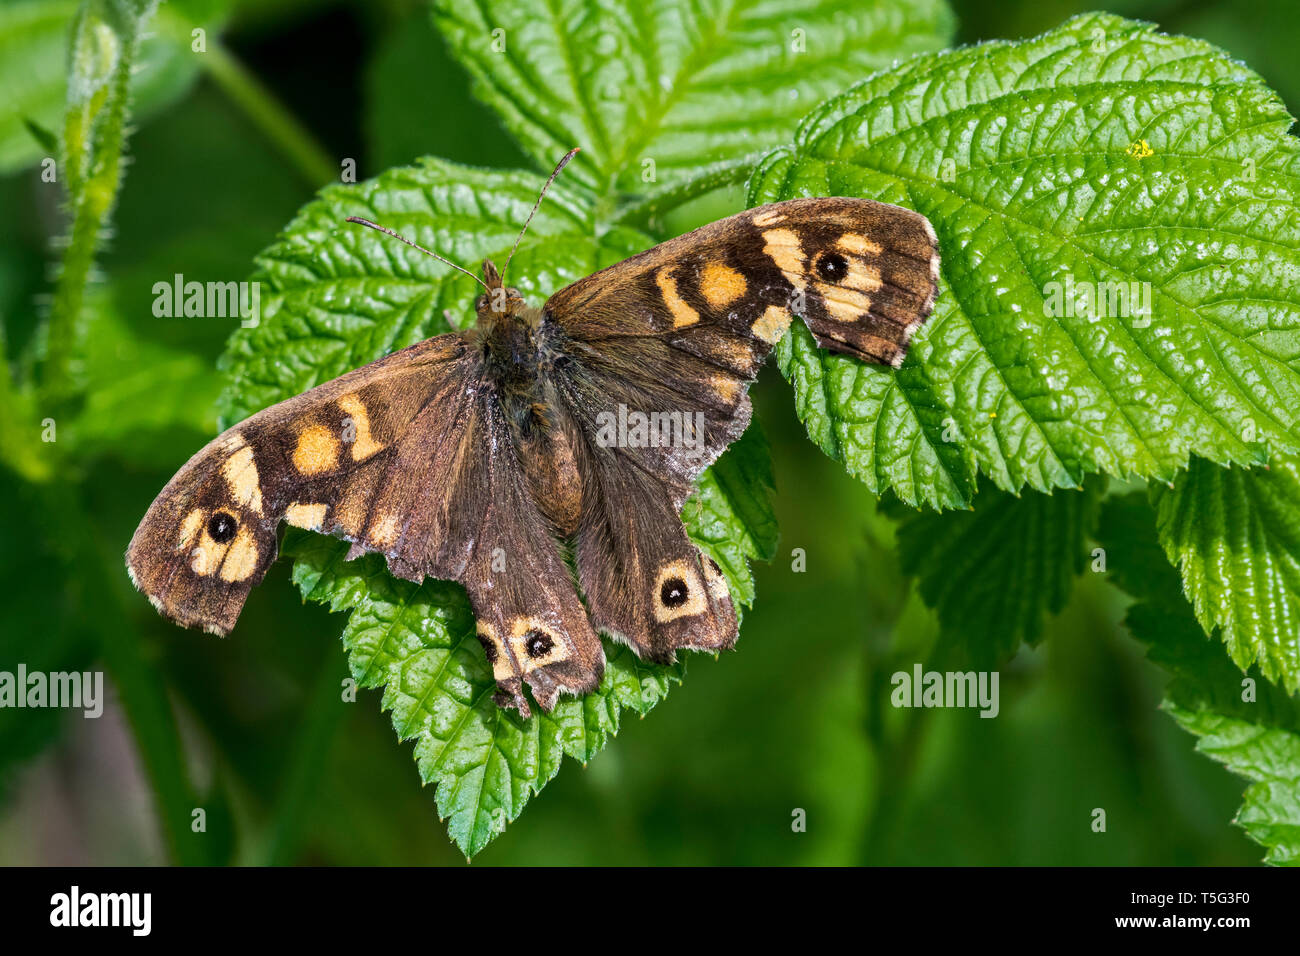 Speckled wood (Pararge aegeria) butterfly with severely damaged wings resting on leaf - Stock Image